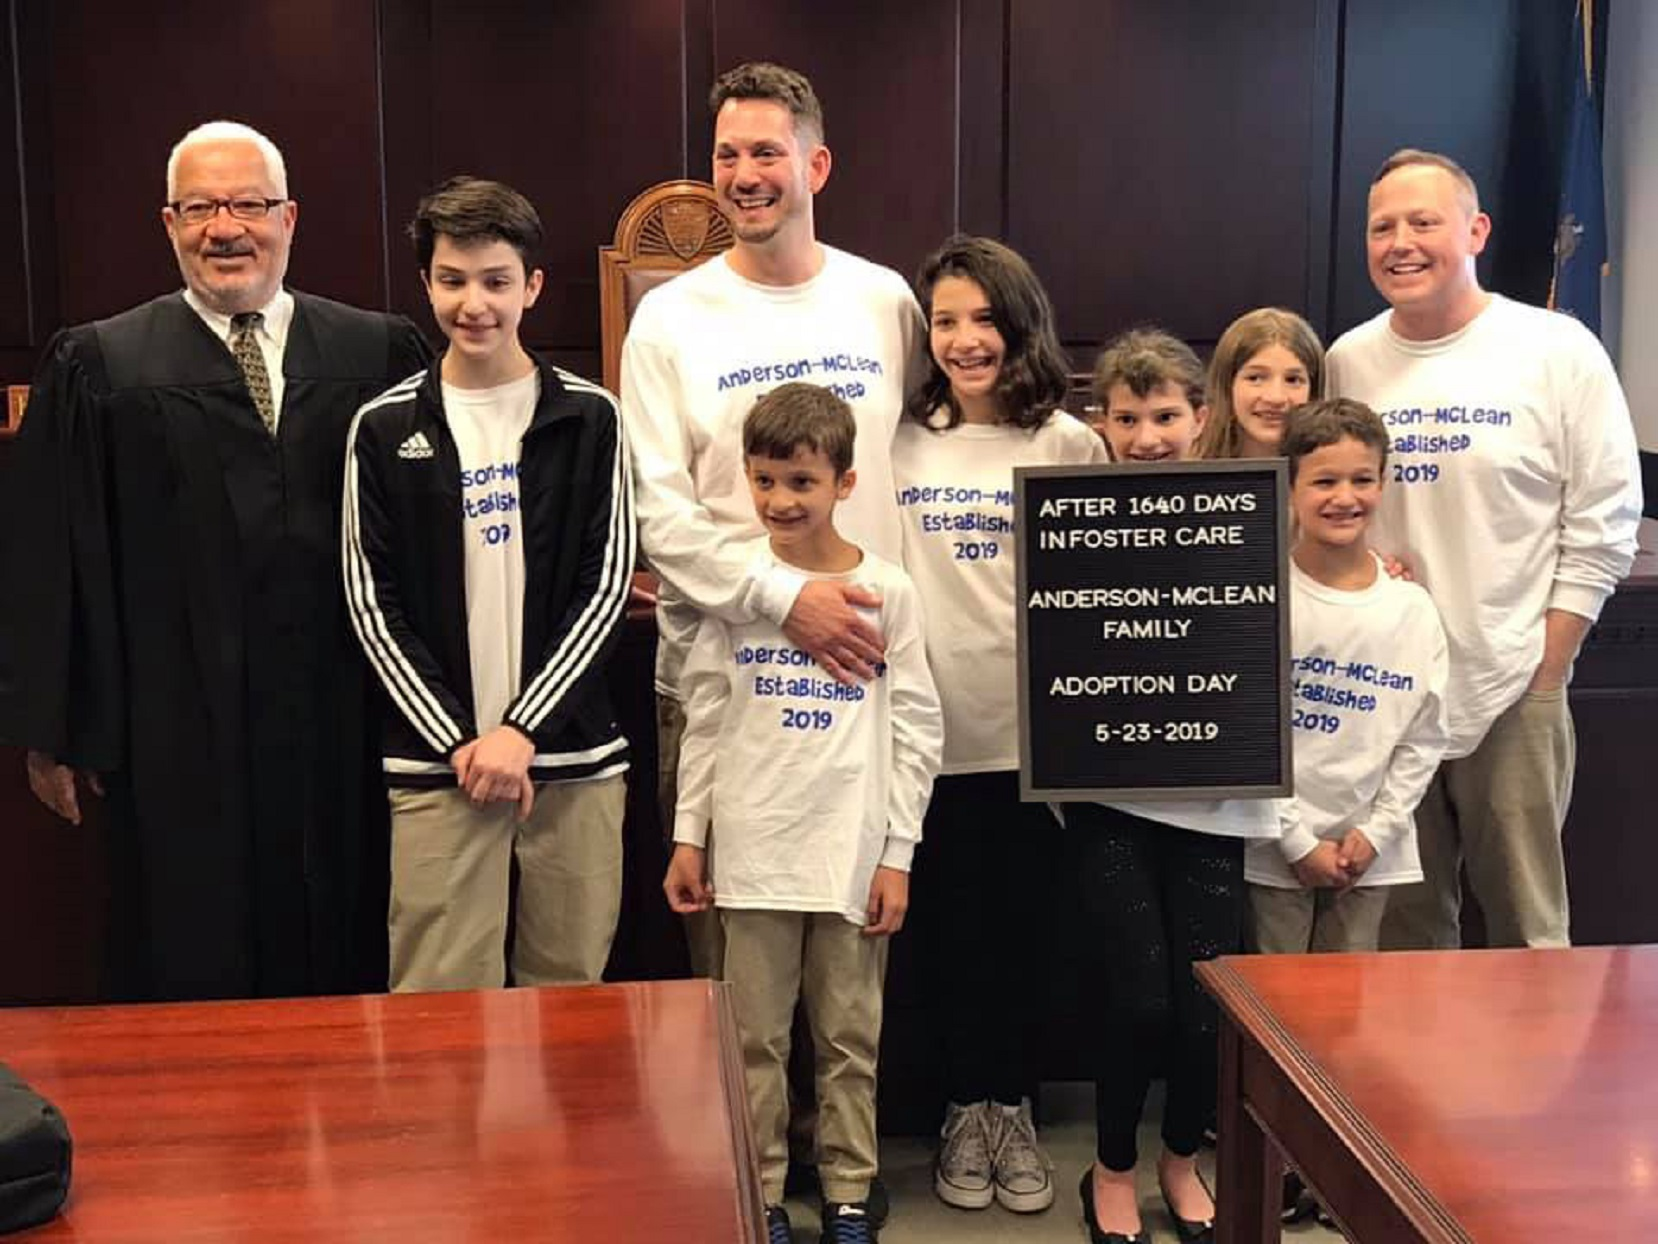 Steve Anderson-McLean and Rob Anderson-McLean with adoptive children on adoption day